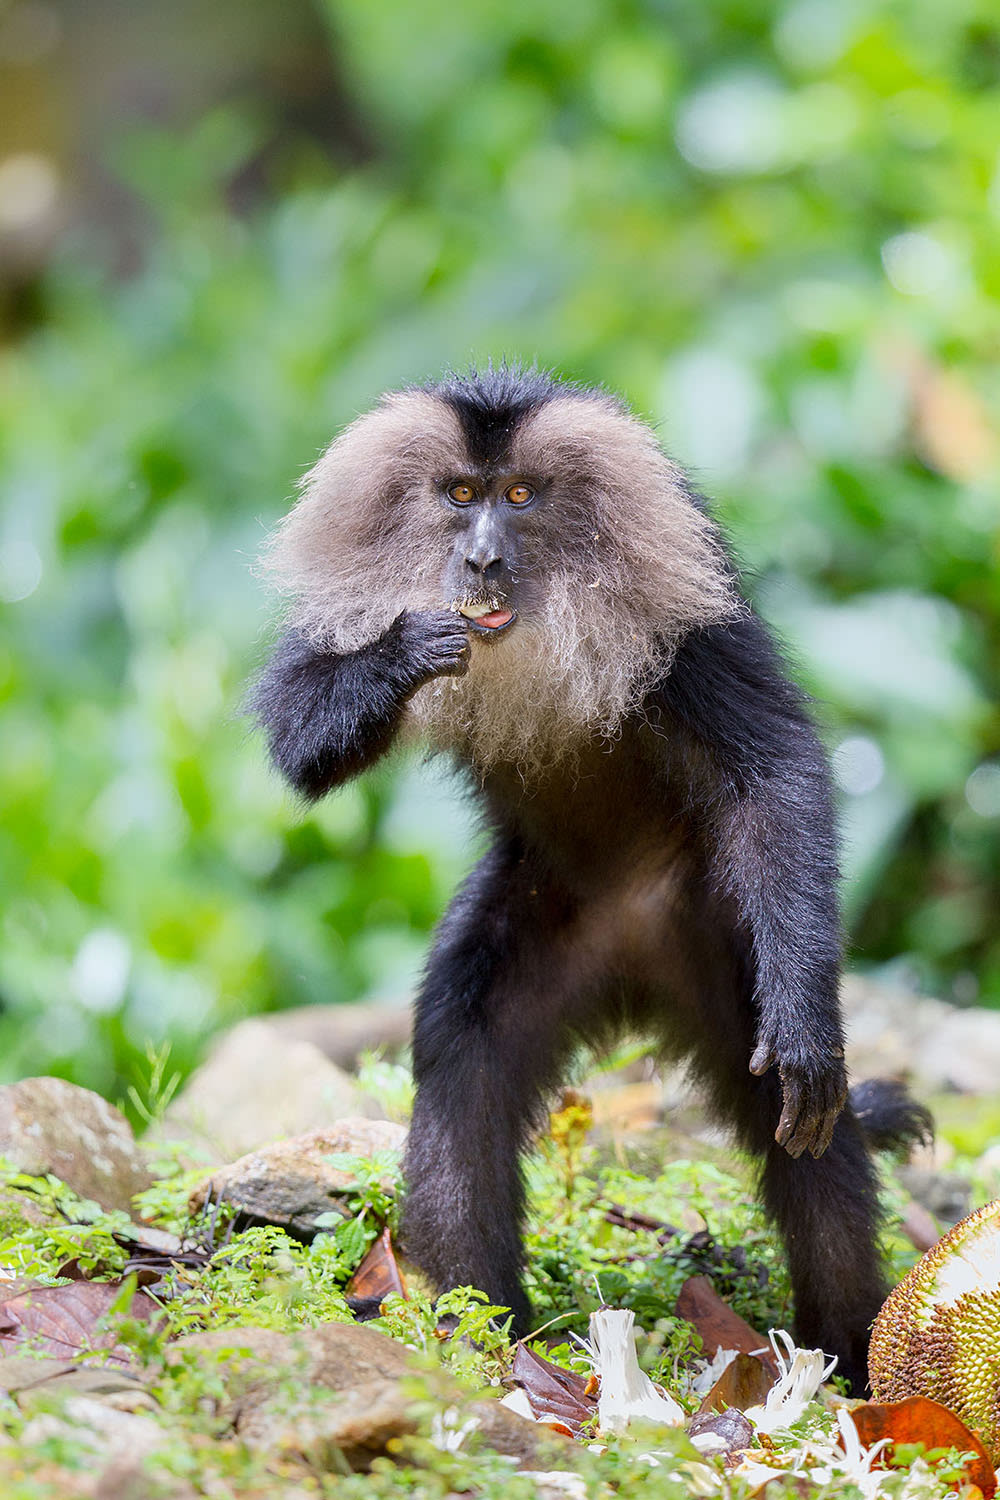 Among the smallest of the macaques, lion-tailed macaques reach an average height of 40-61 cm. Photo: Arindam Bhattacharya